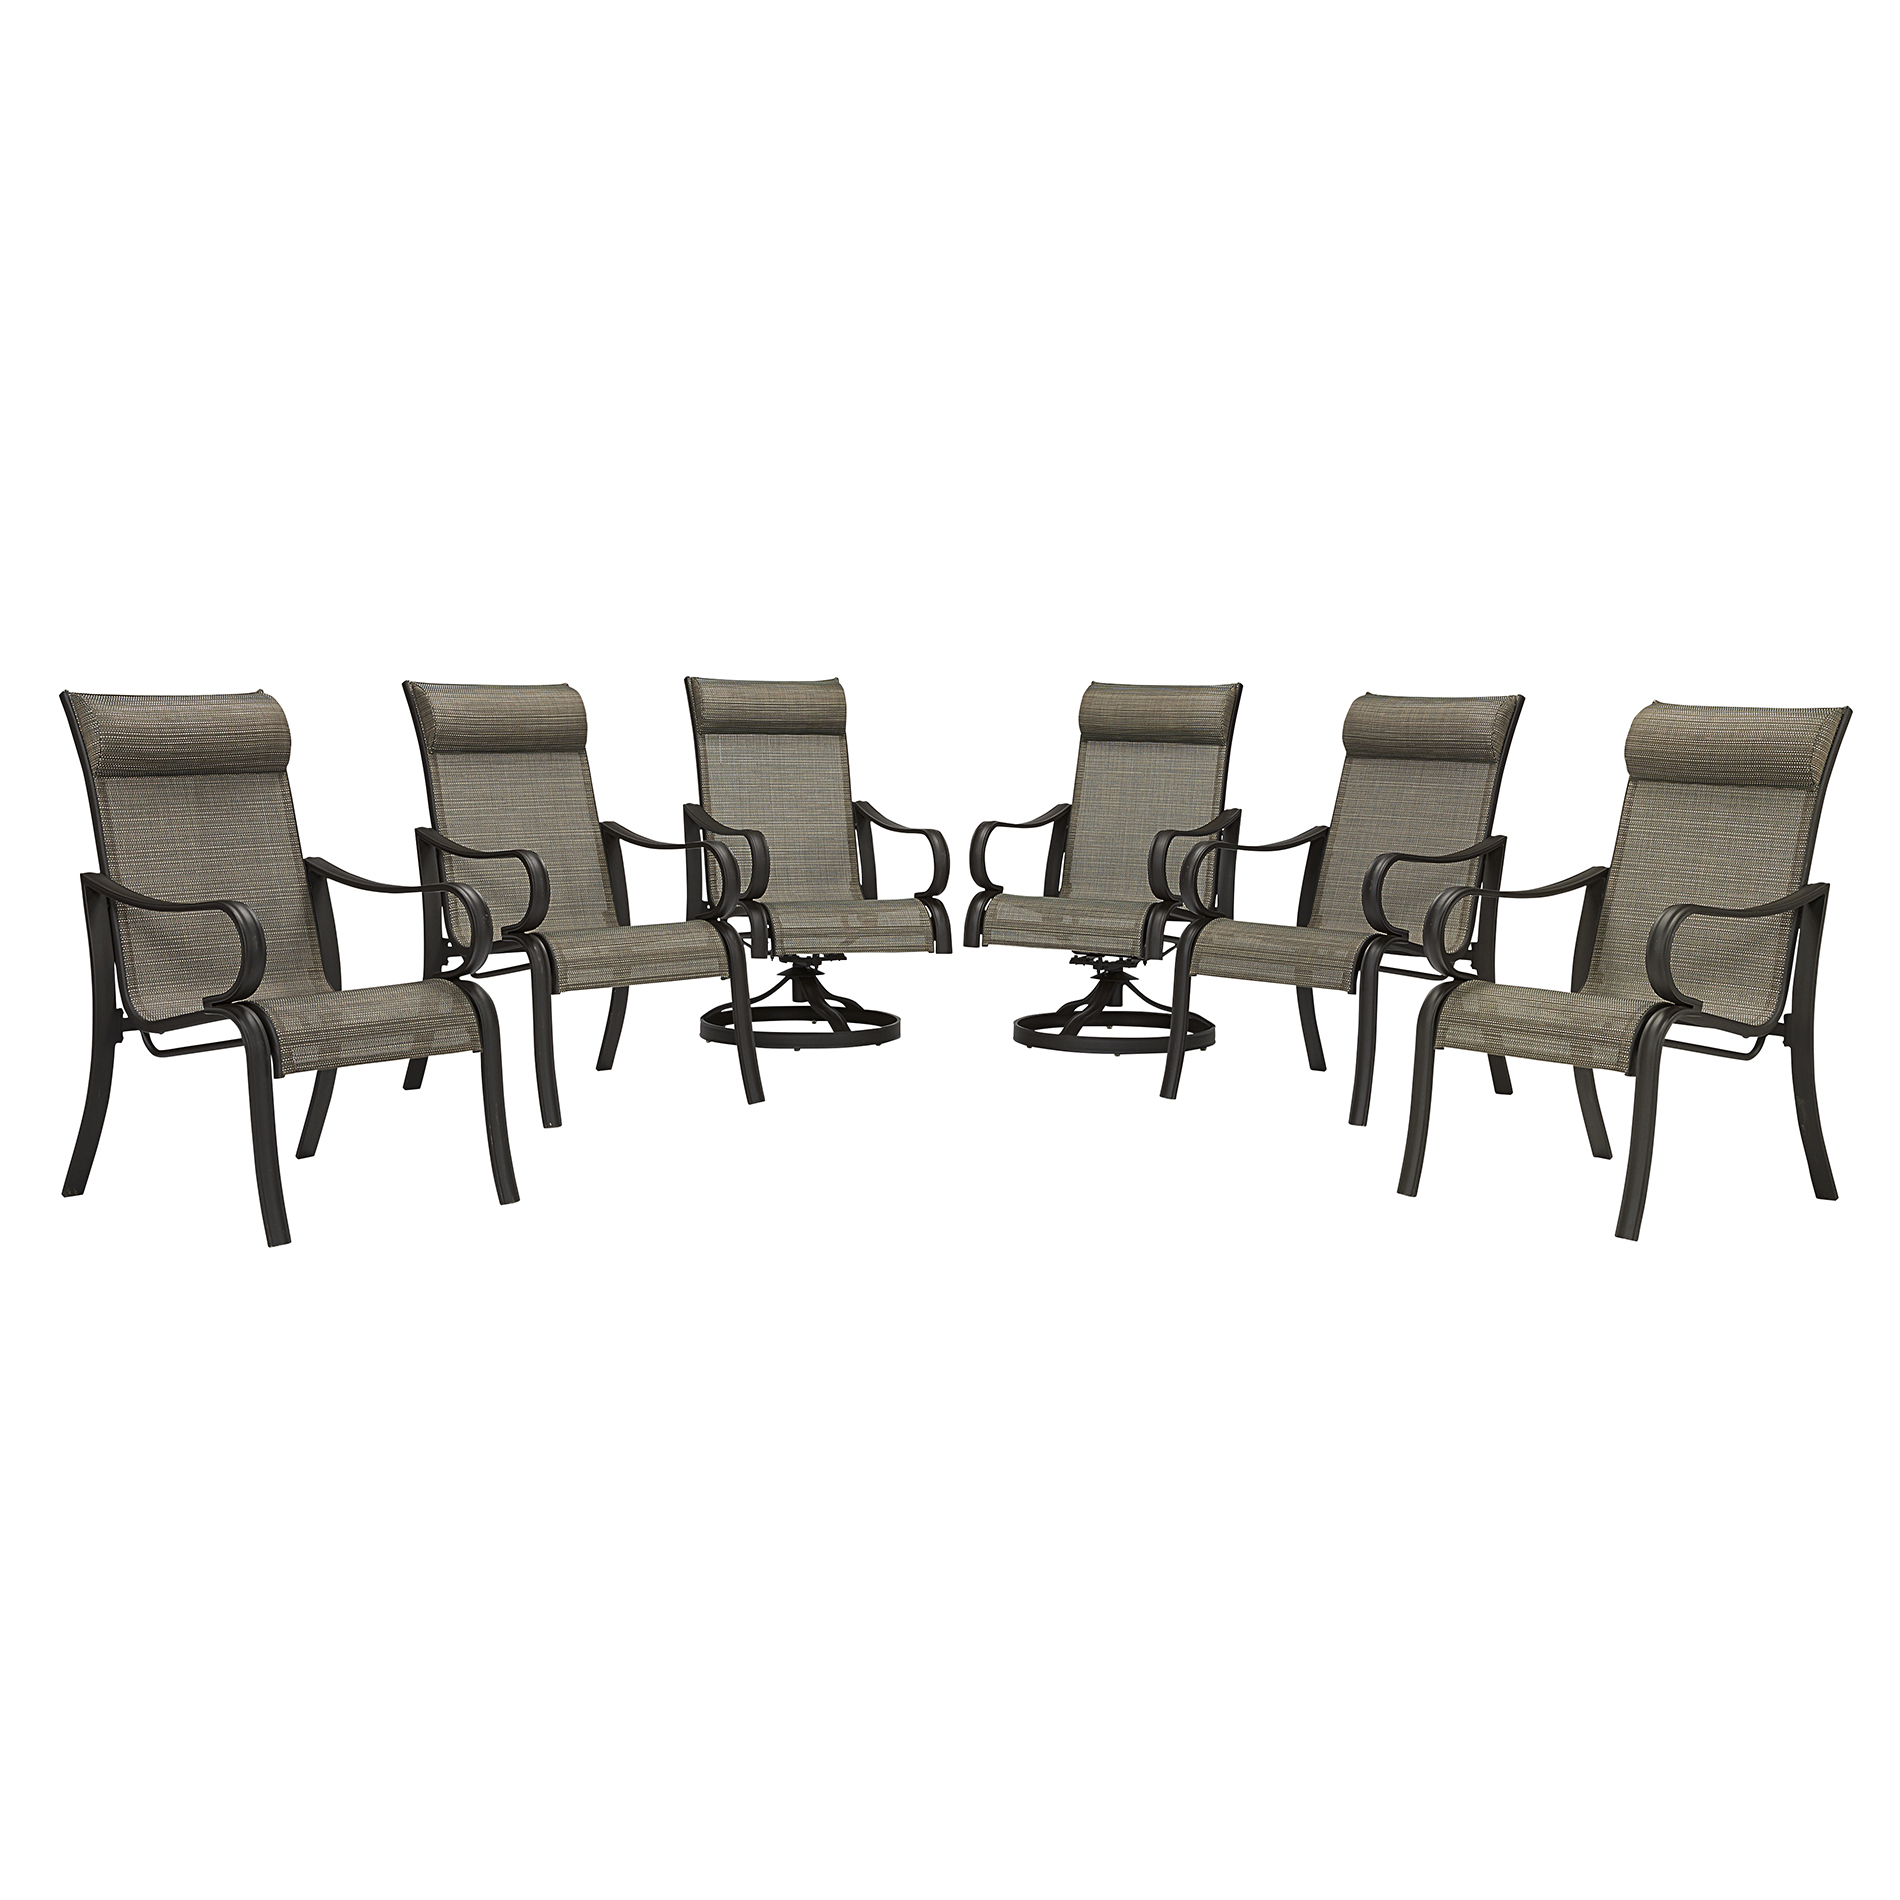 Kmart Dining Chairs Jaclyn Smith Marion 6 Dining Chairs In Tan Kmart